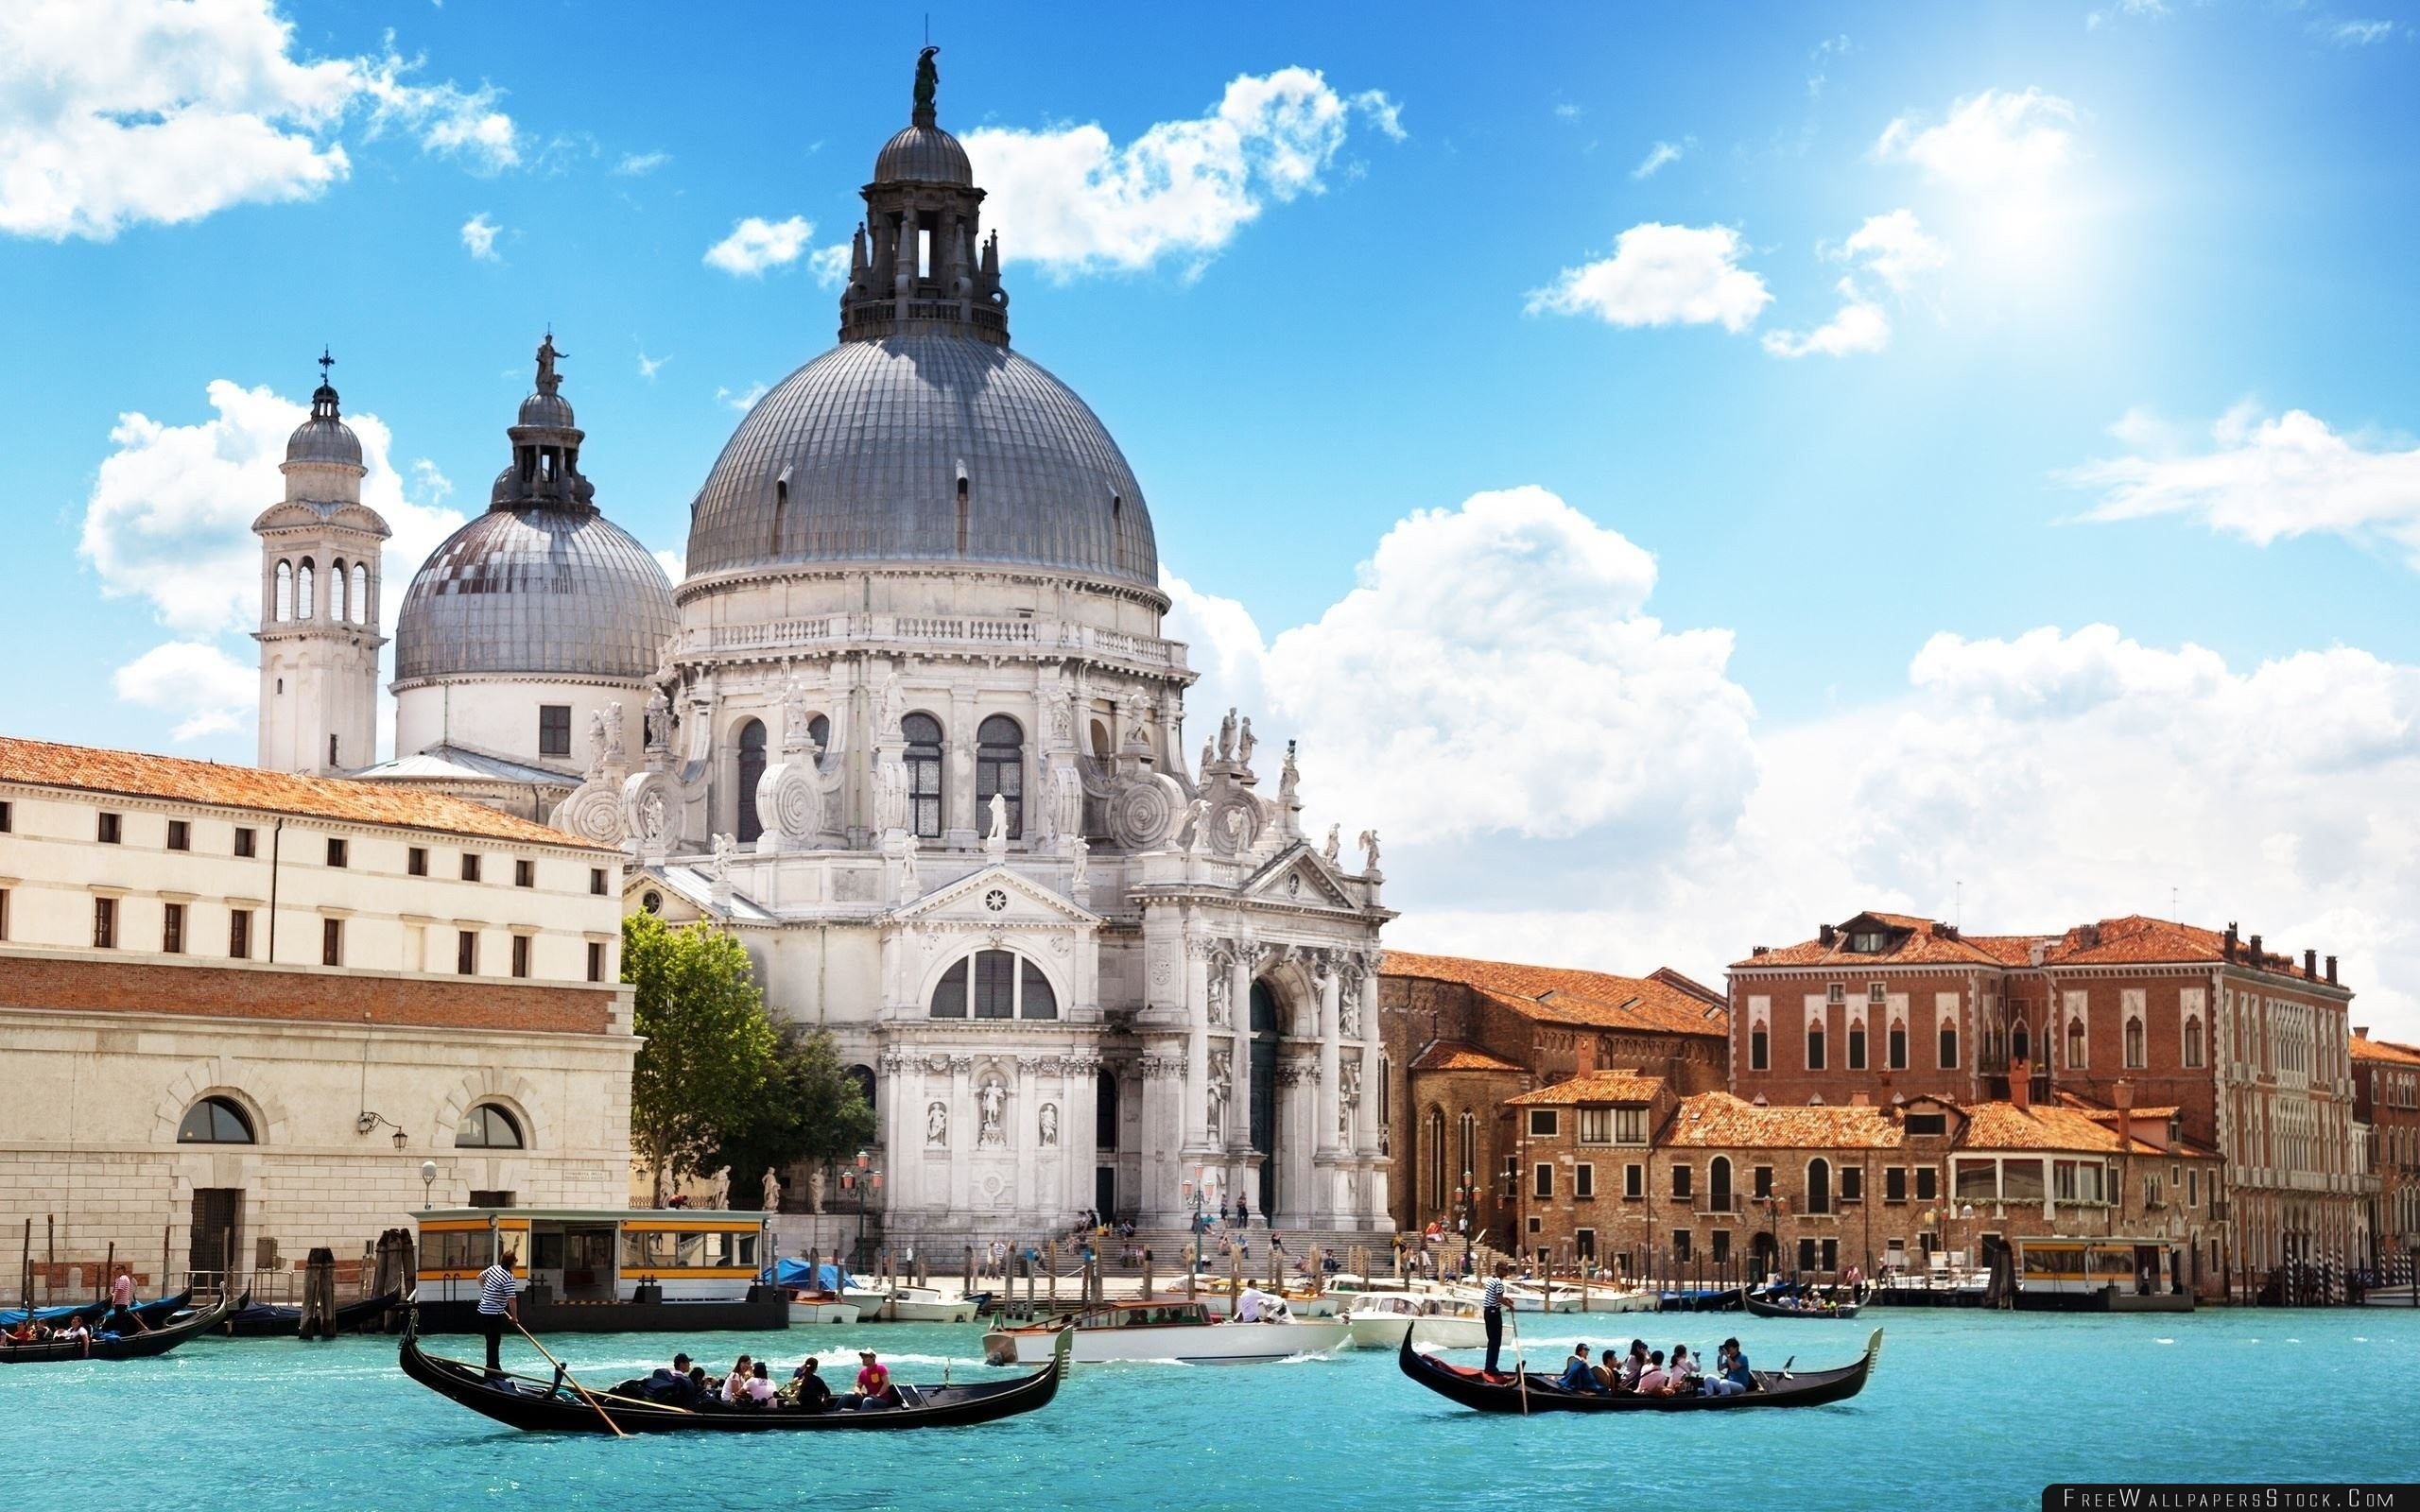 Download Free Wallpaper Venice Buildings River Gondola People